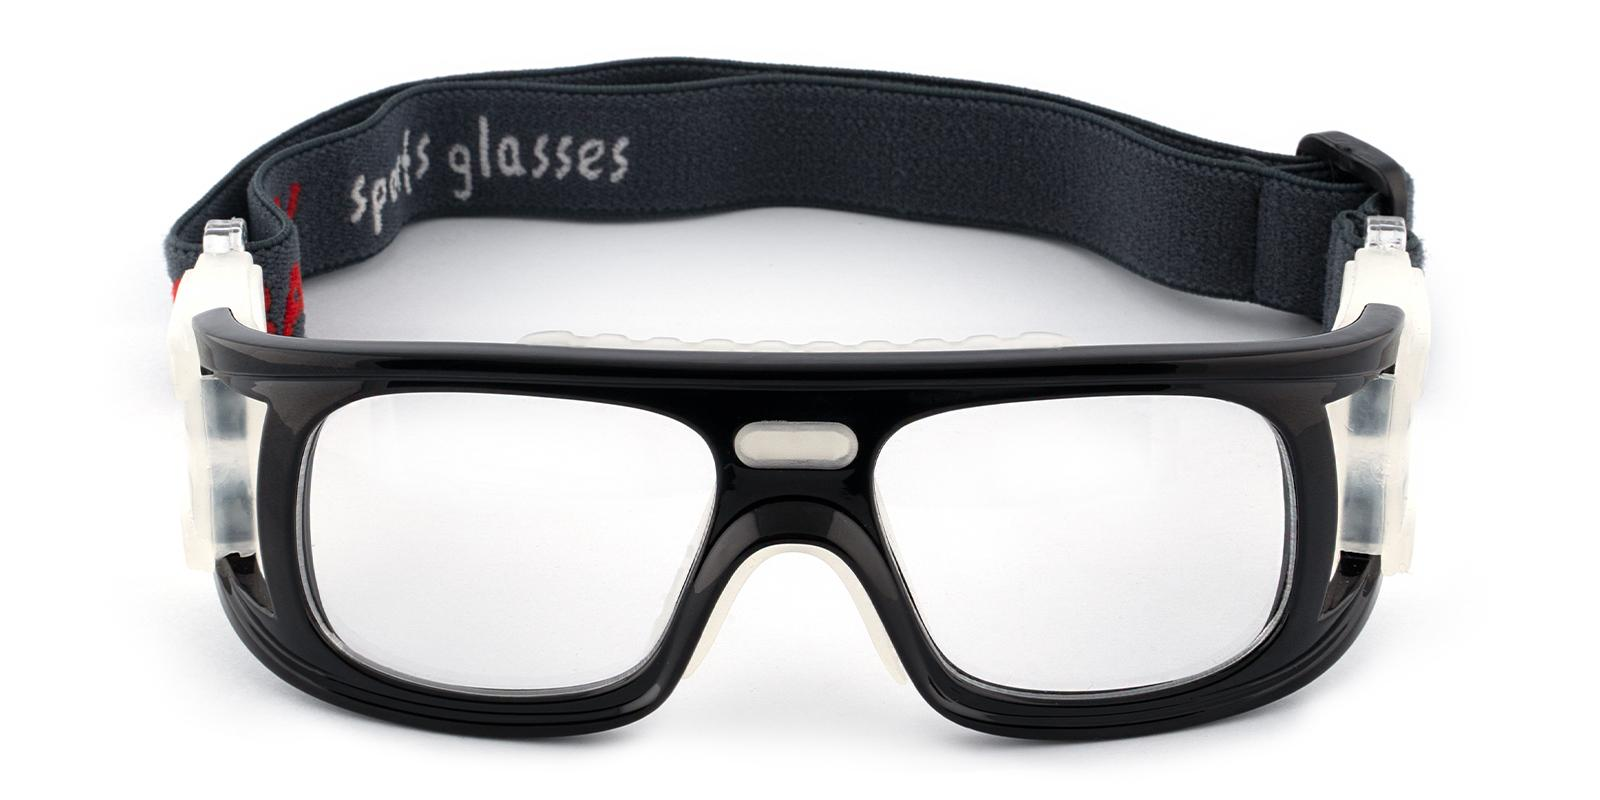 Lock Springs Black Plastic NosePads , SportsGlasses Frames from ABBE Glasses